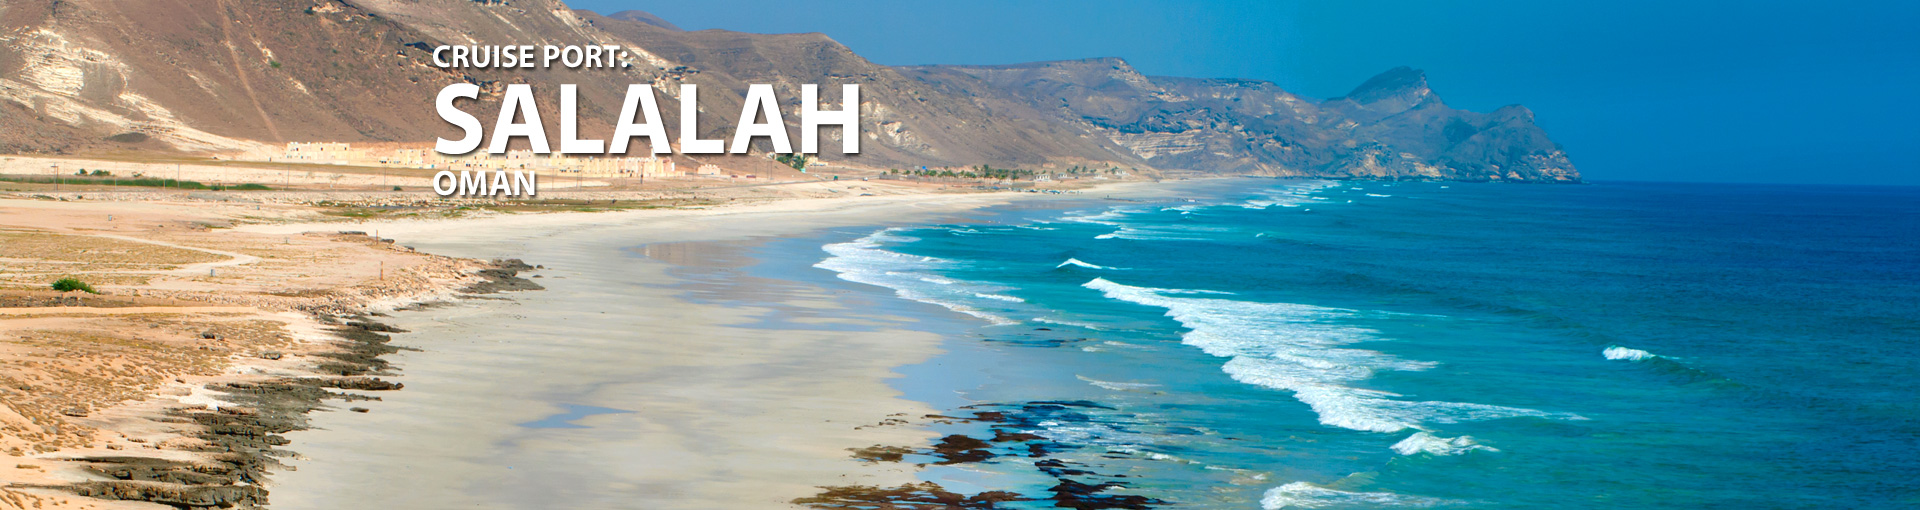 Cruises to Salalah, Oman